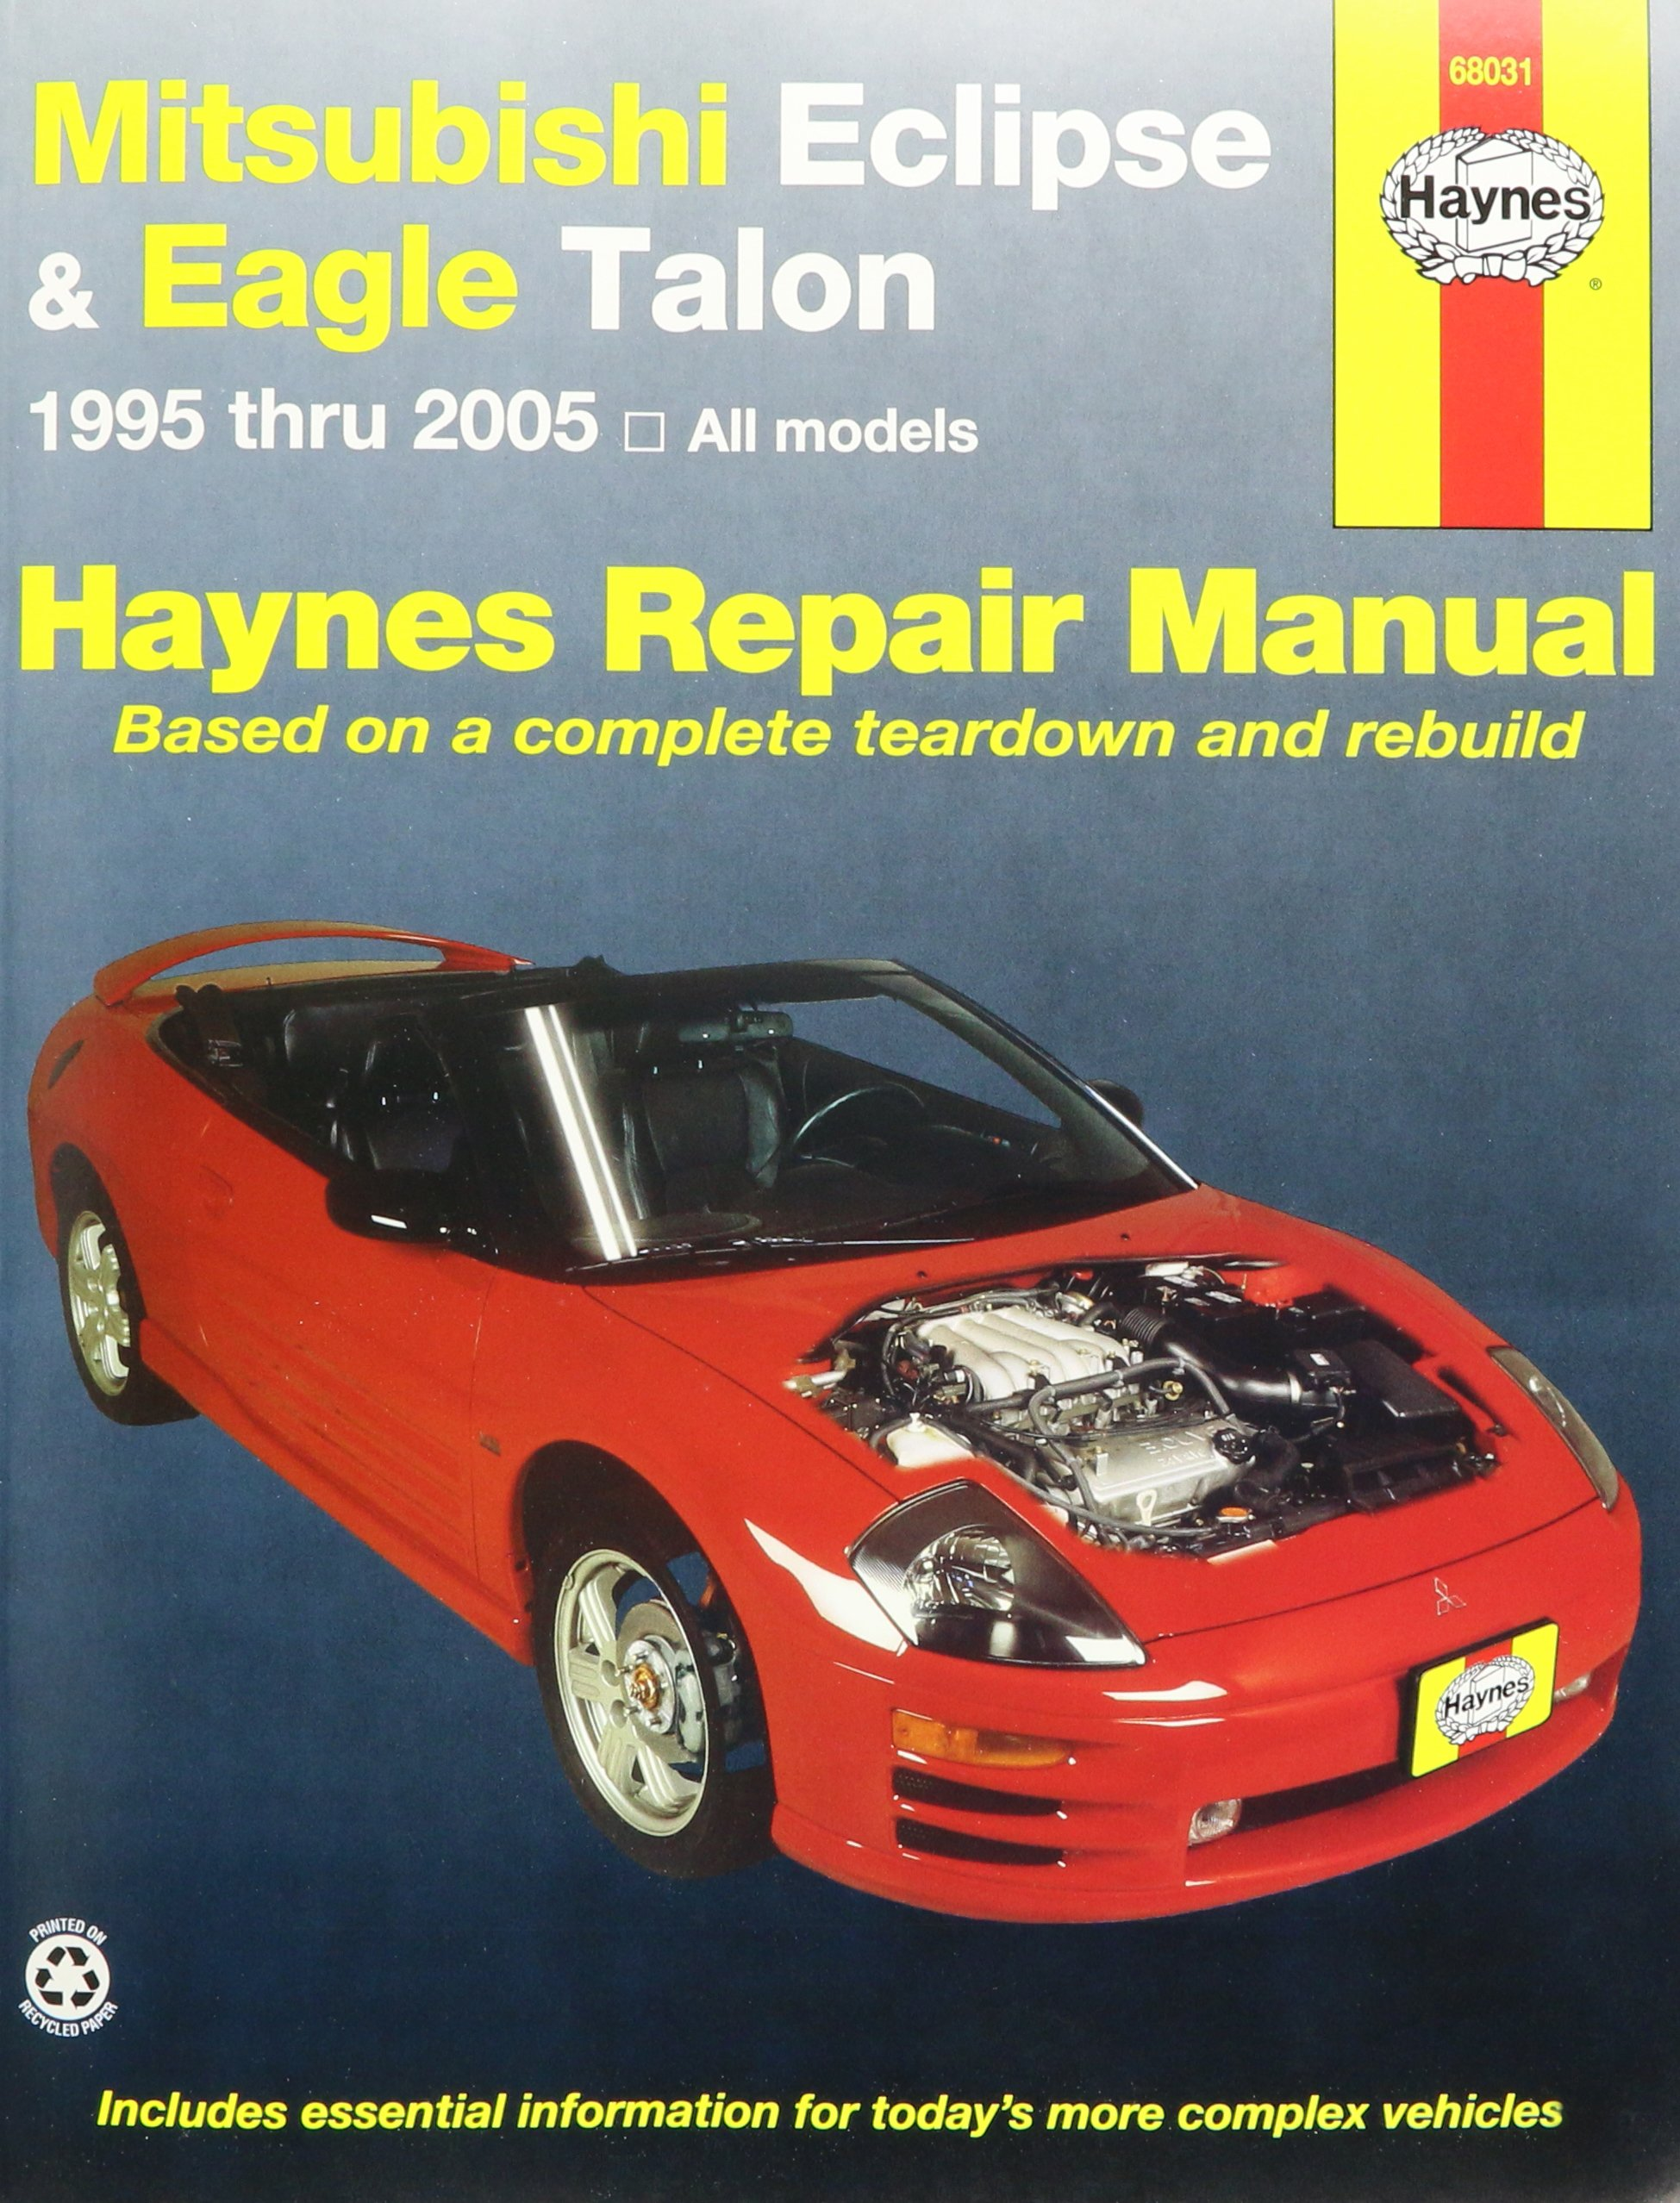 haynes mitsubishi eclipse and eagle talon 95 01 manual rh amazon com 1992 Eagle Talon 1997 Eagle Talon